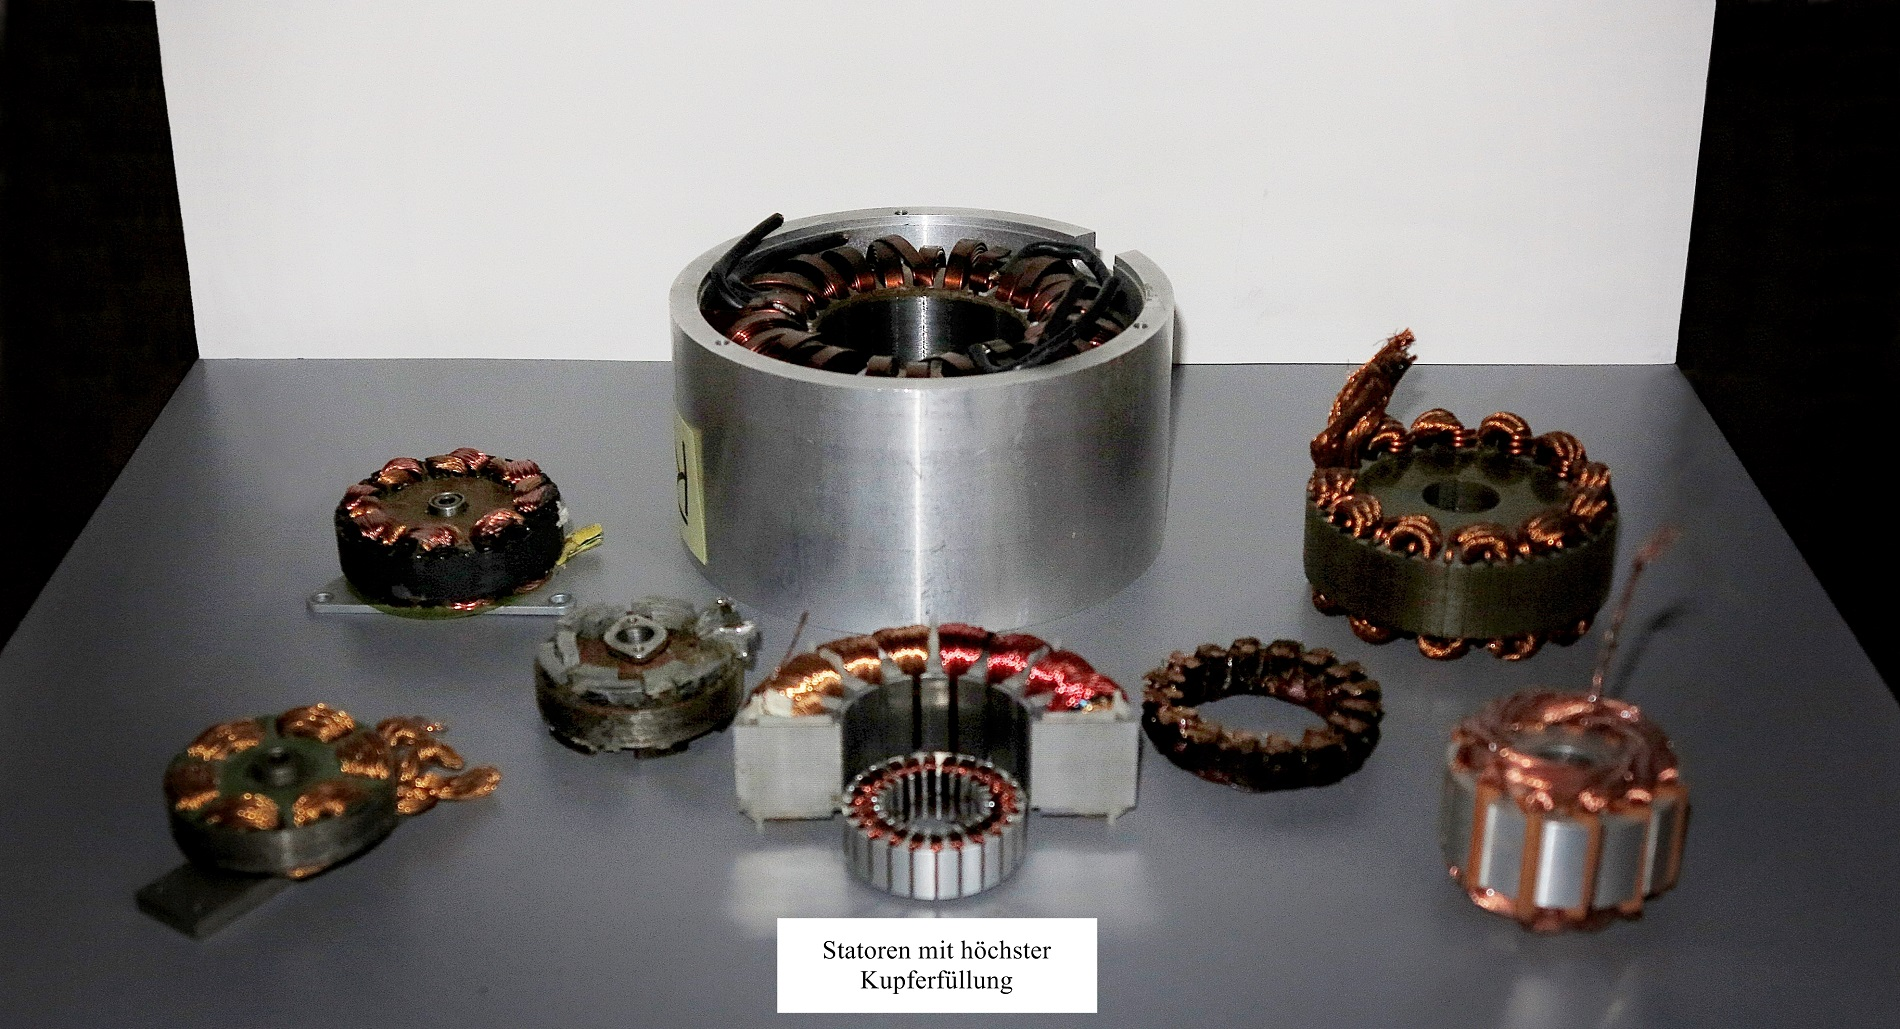 Coil and stator variations, optimization and design of rotors